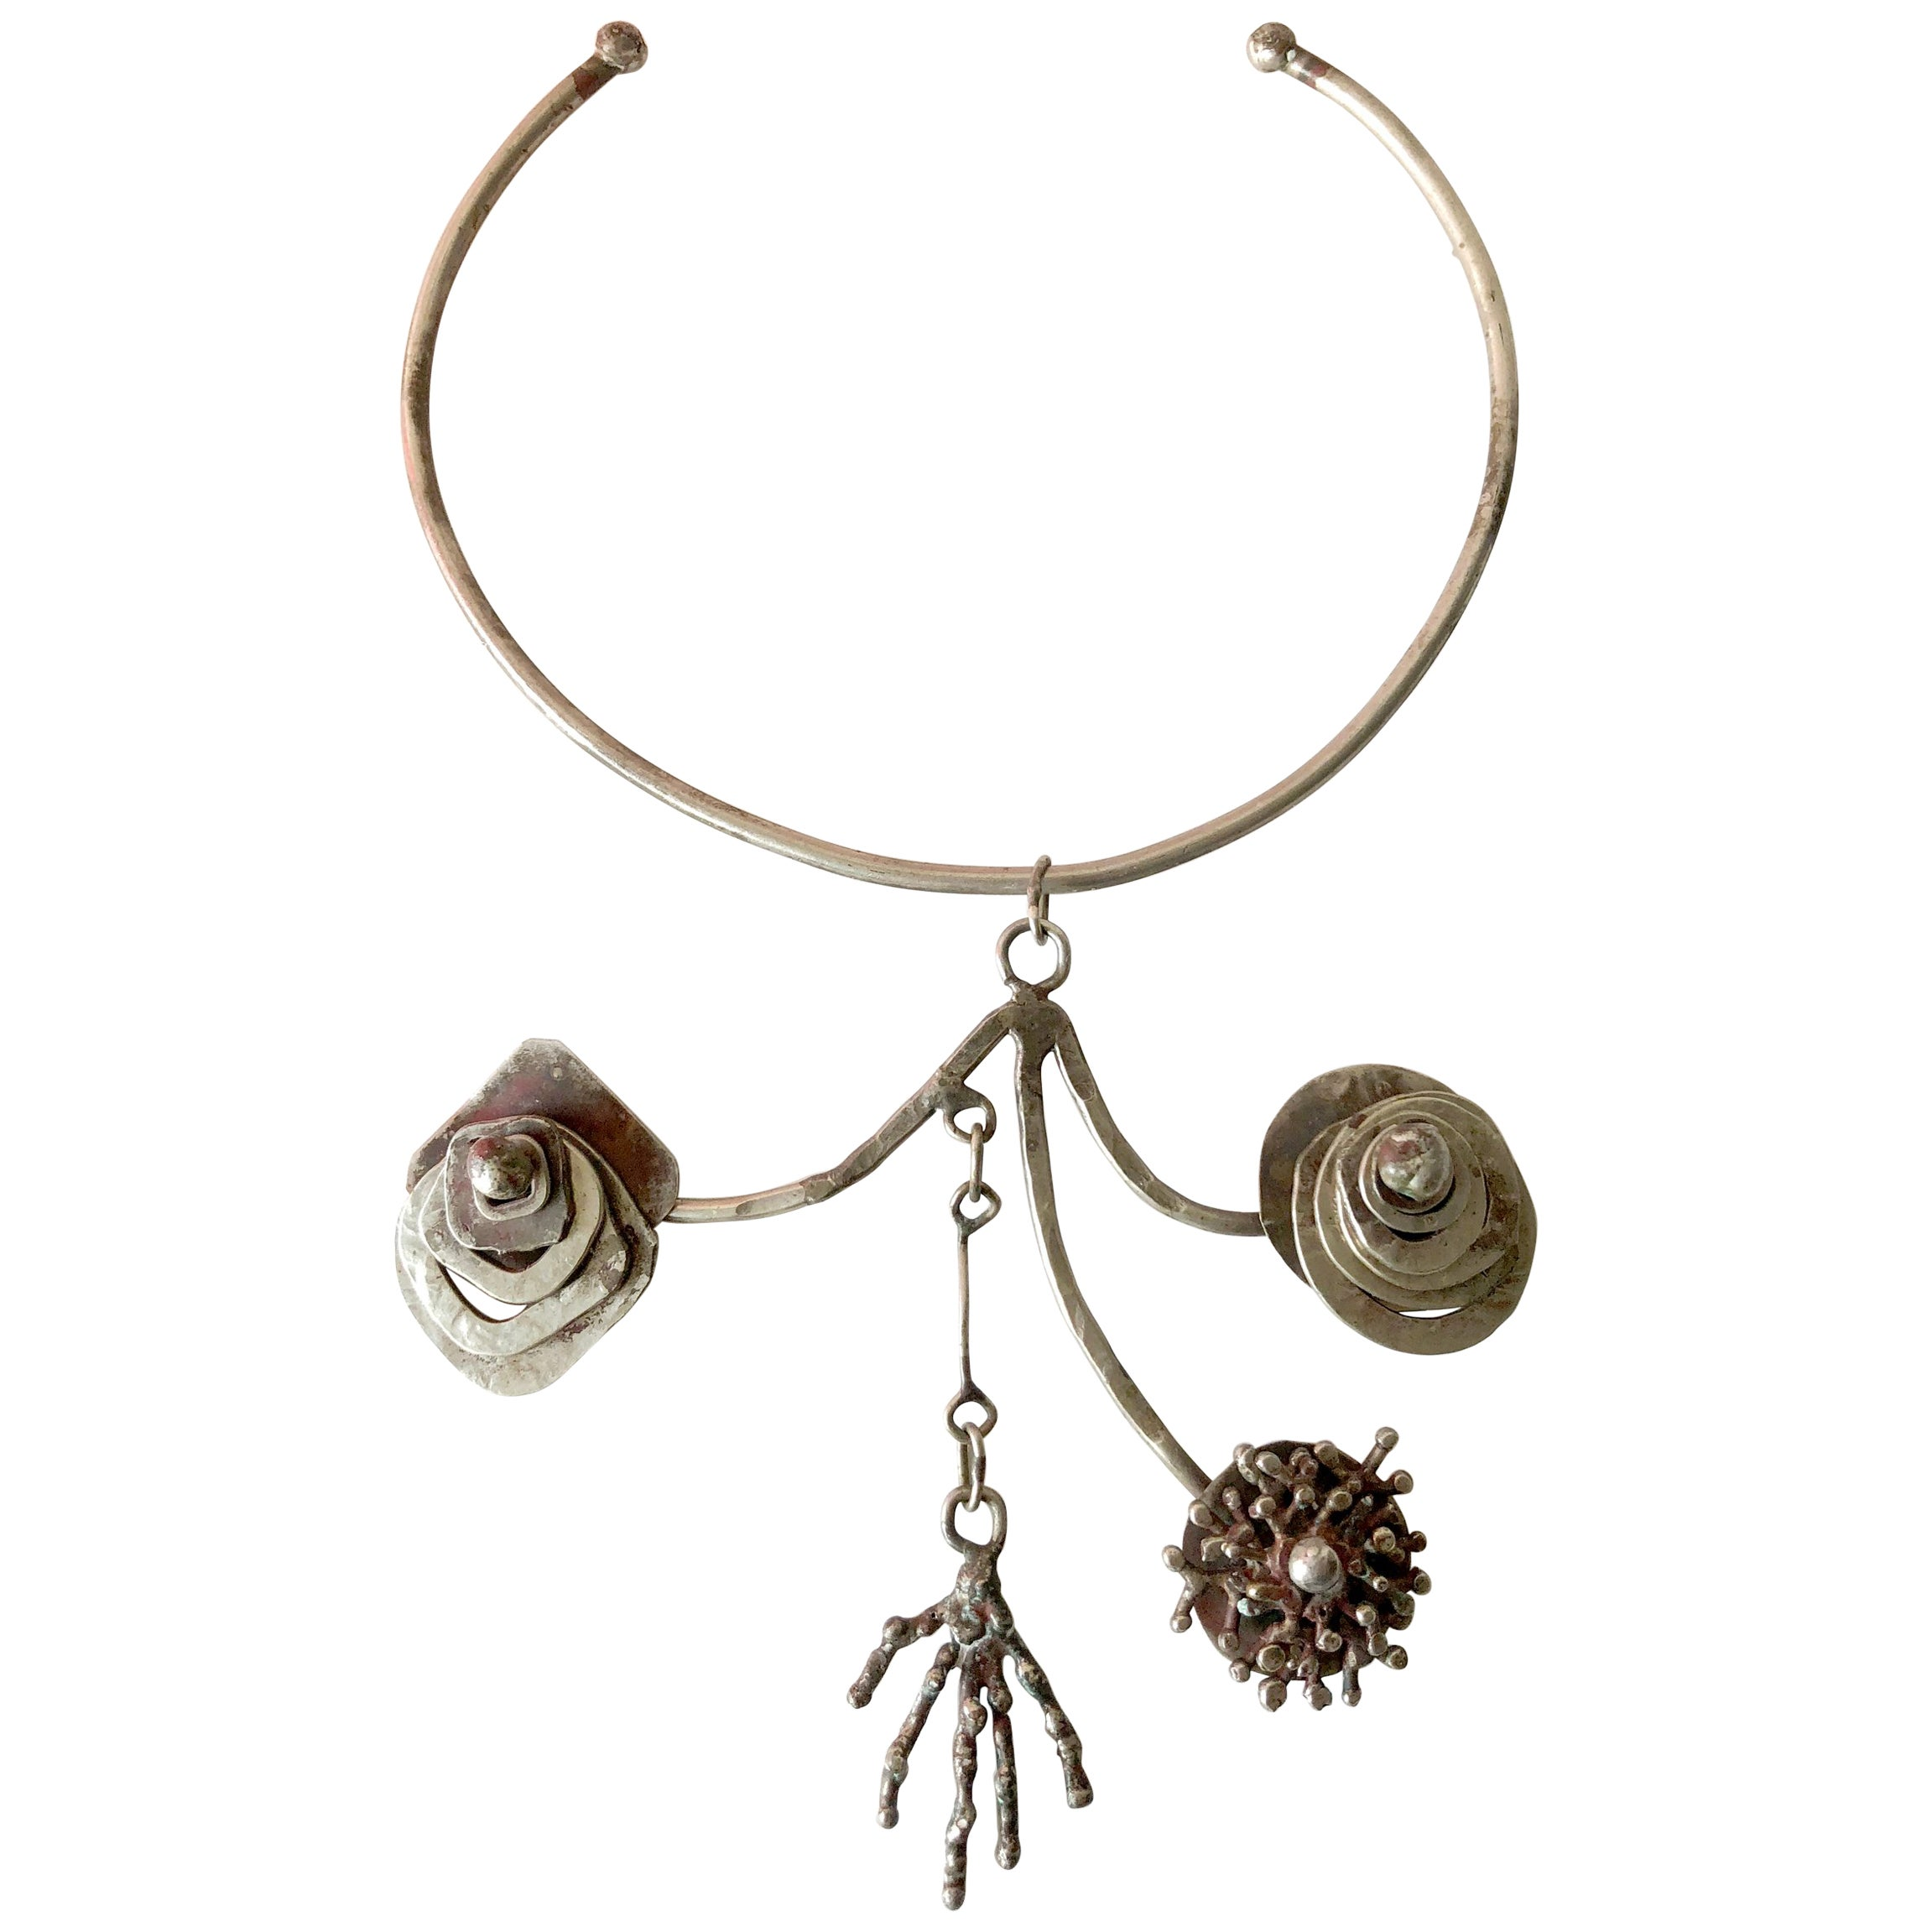 Pal Kepenyes Silver Plate Kinetic Modern Surrealist Necklace